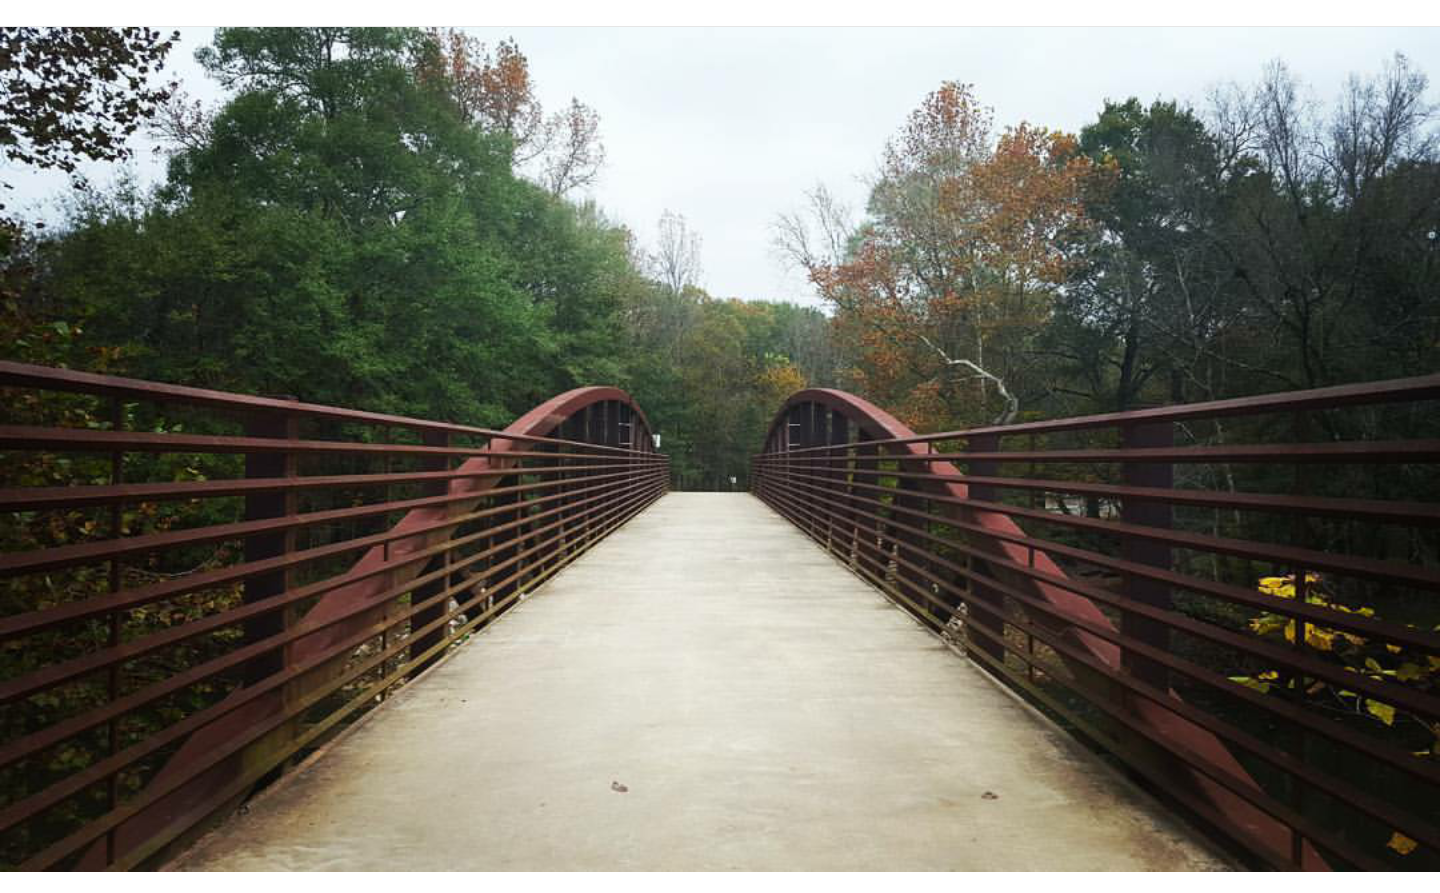 Because We All Have Bridges to Cross